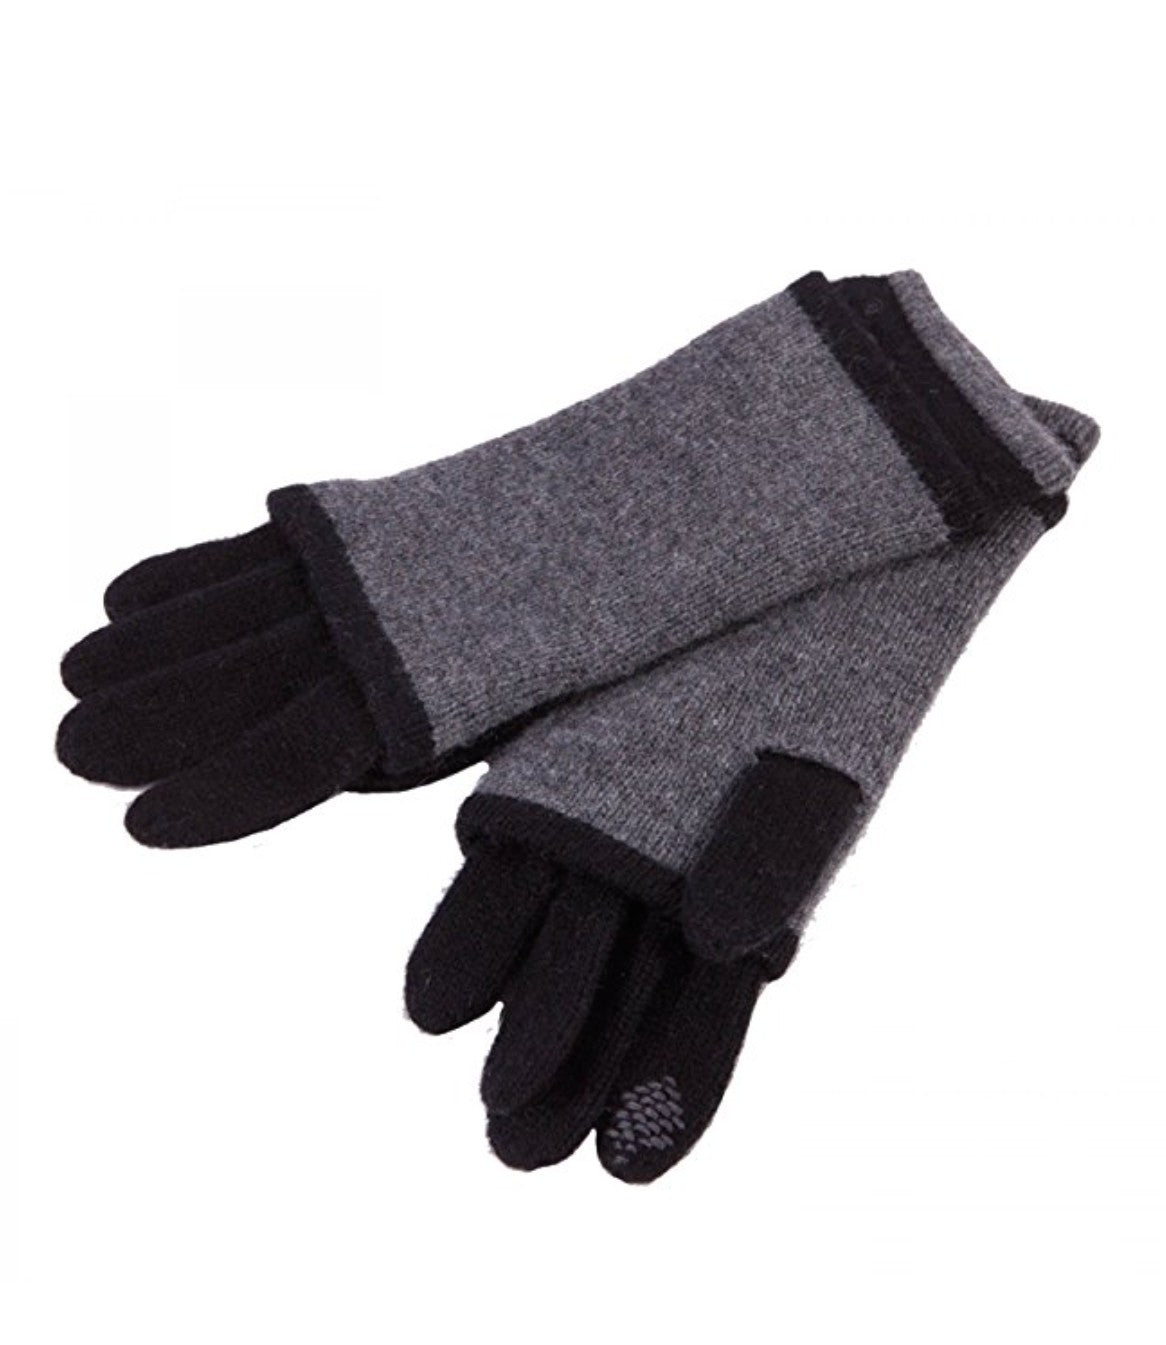 VILLAGE MERCANTILE Women's Cashmere Convertible Gloves